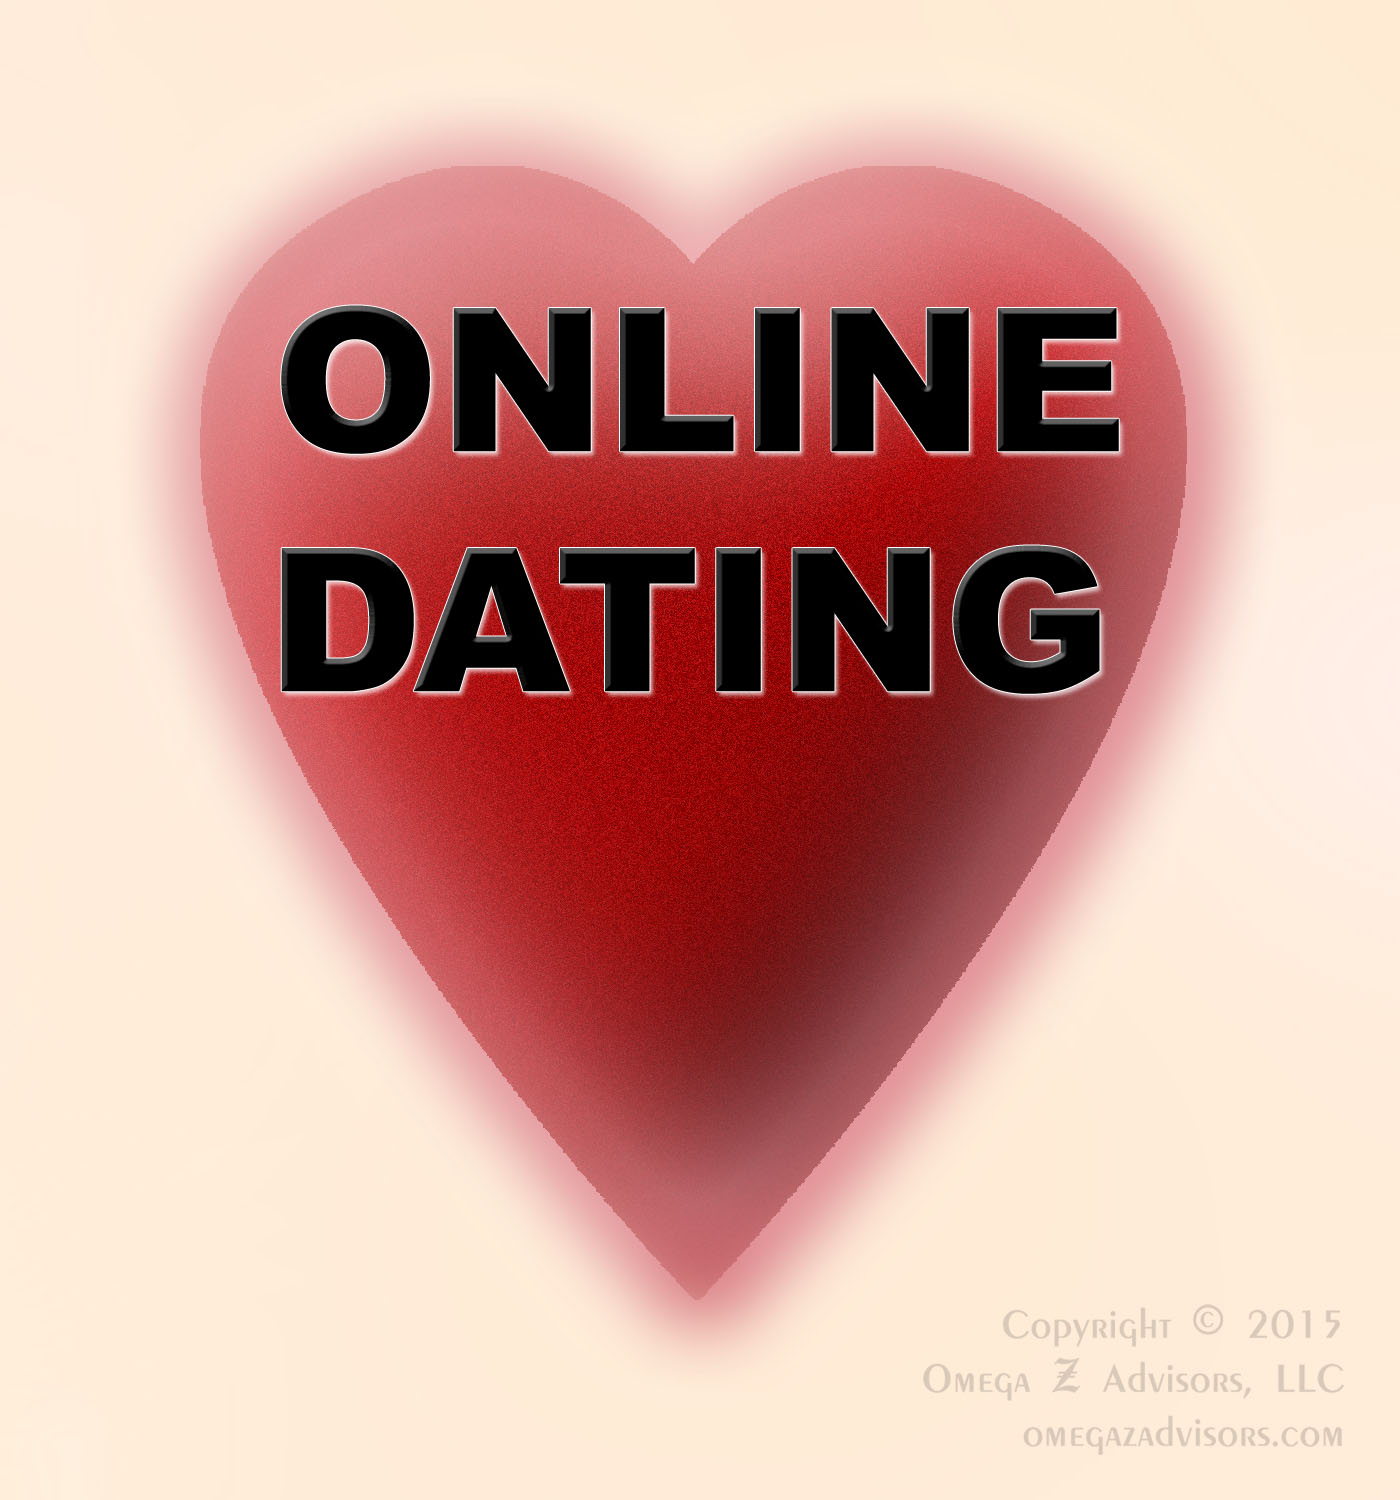 There are management lessons from online dating.